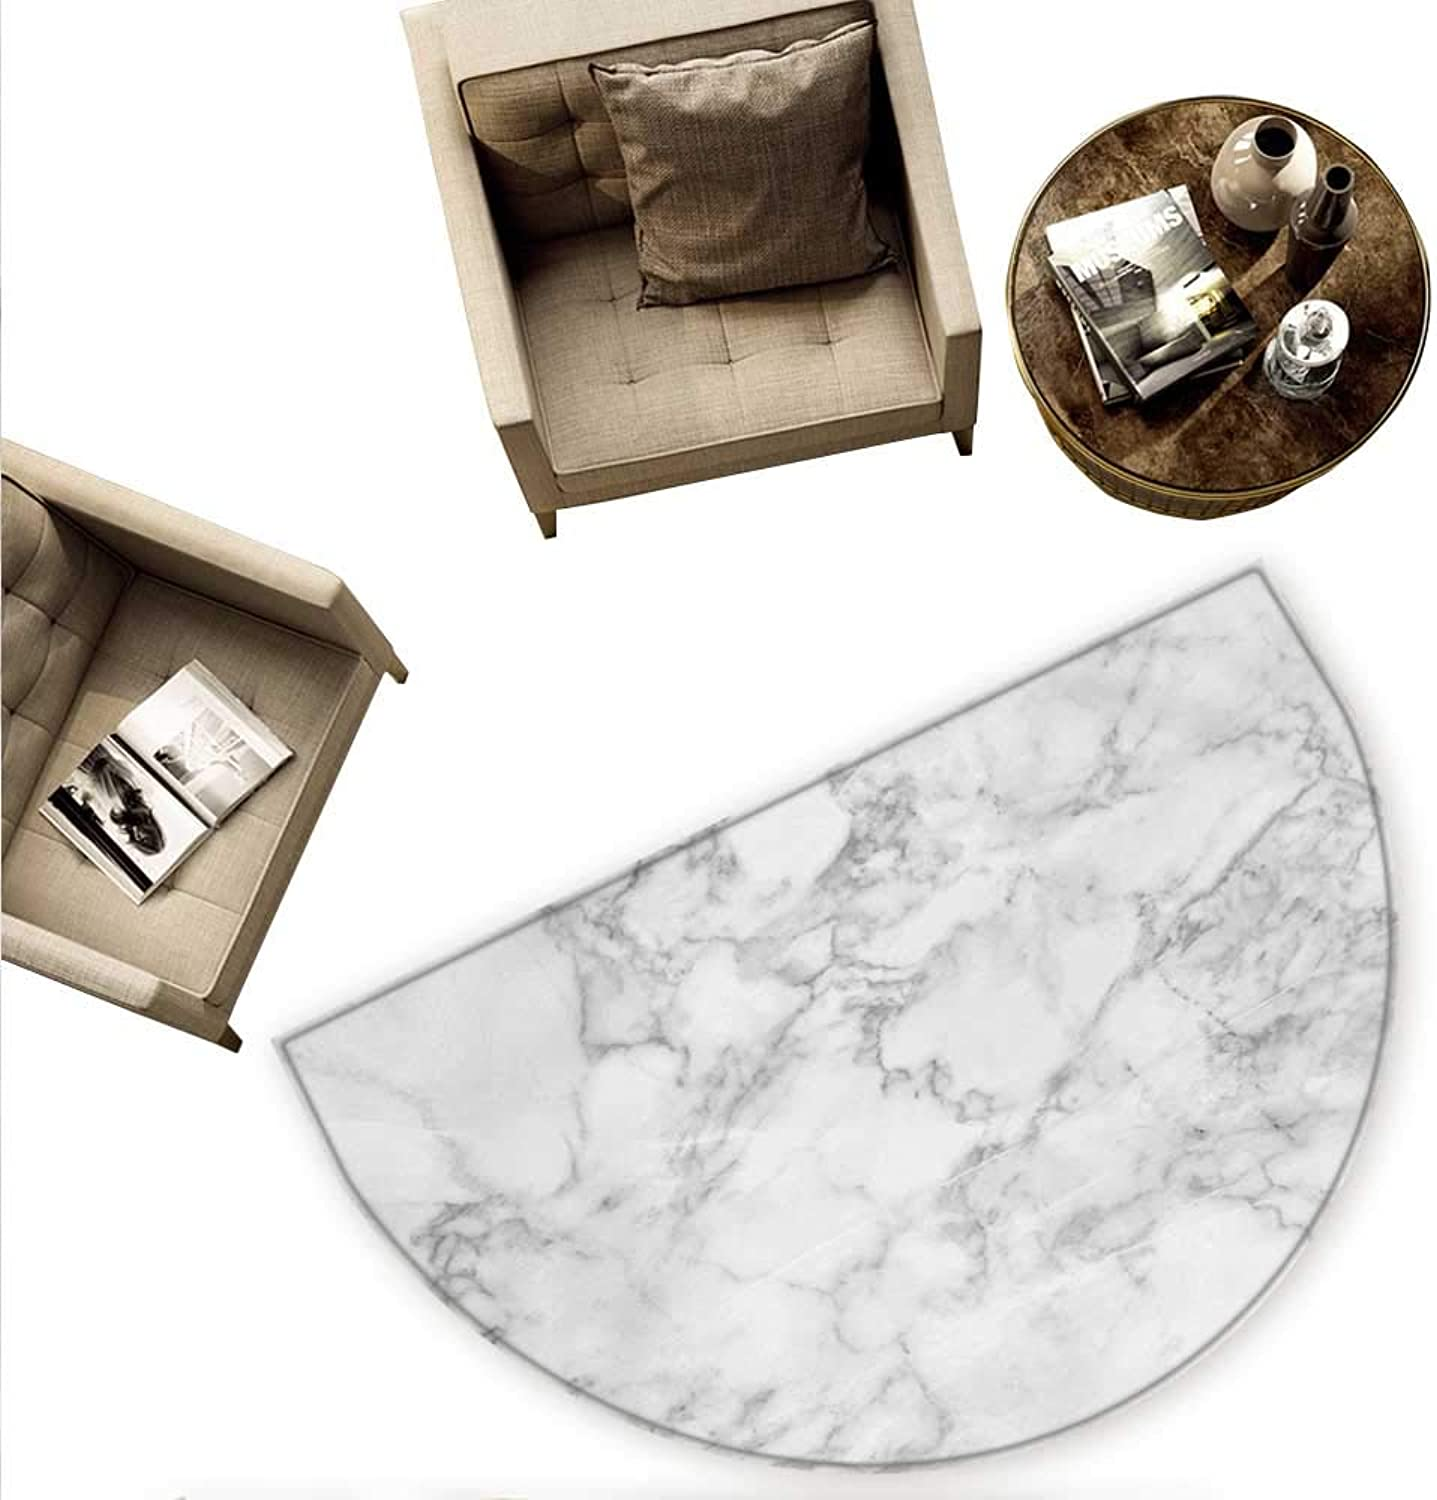 Marble Semicircular Cushion Nature Granite Pattern with Cloudy Spotted Trace Effects Marble Artistic Image Entry Door Mat H 63  xD 94.5  Pale Grey Dust